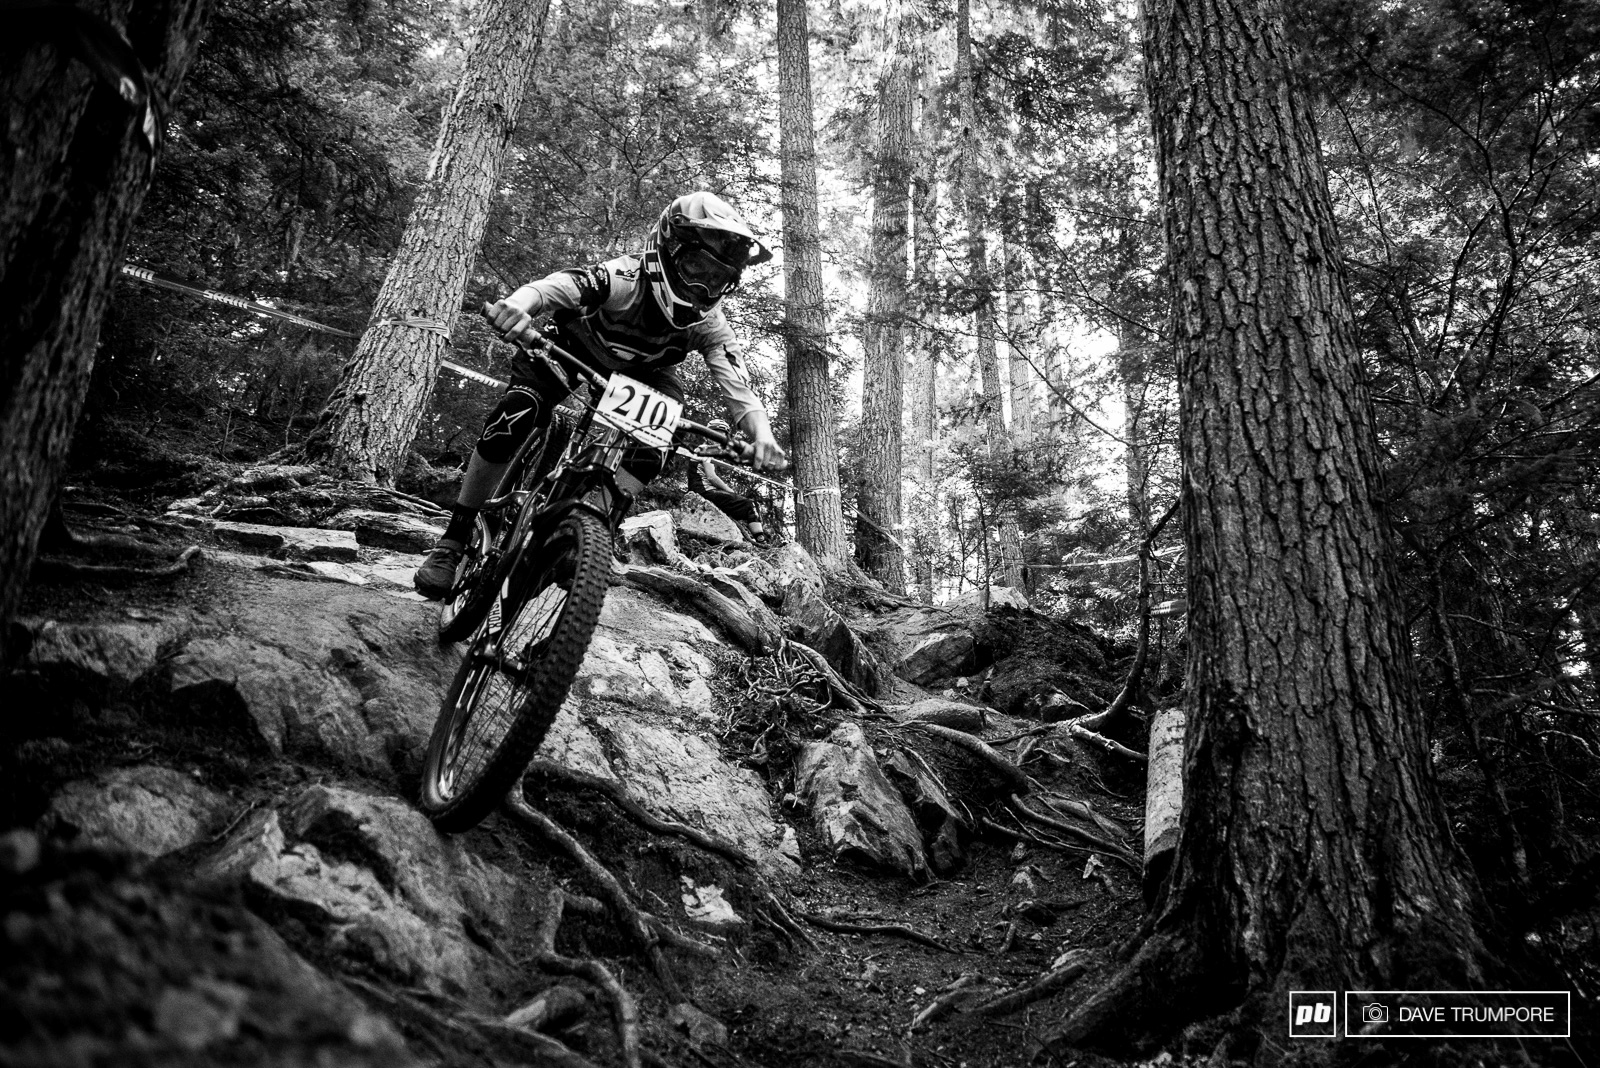 With every race Rachel Throop get a little more confident riding even the gnarliest of lines with authority.